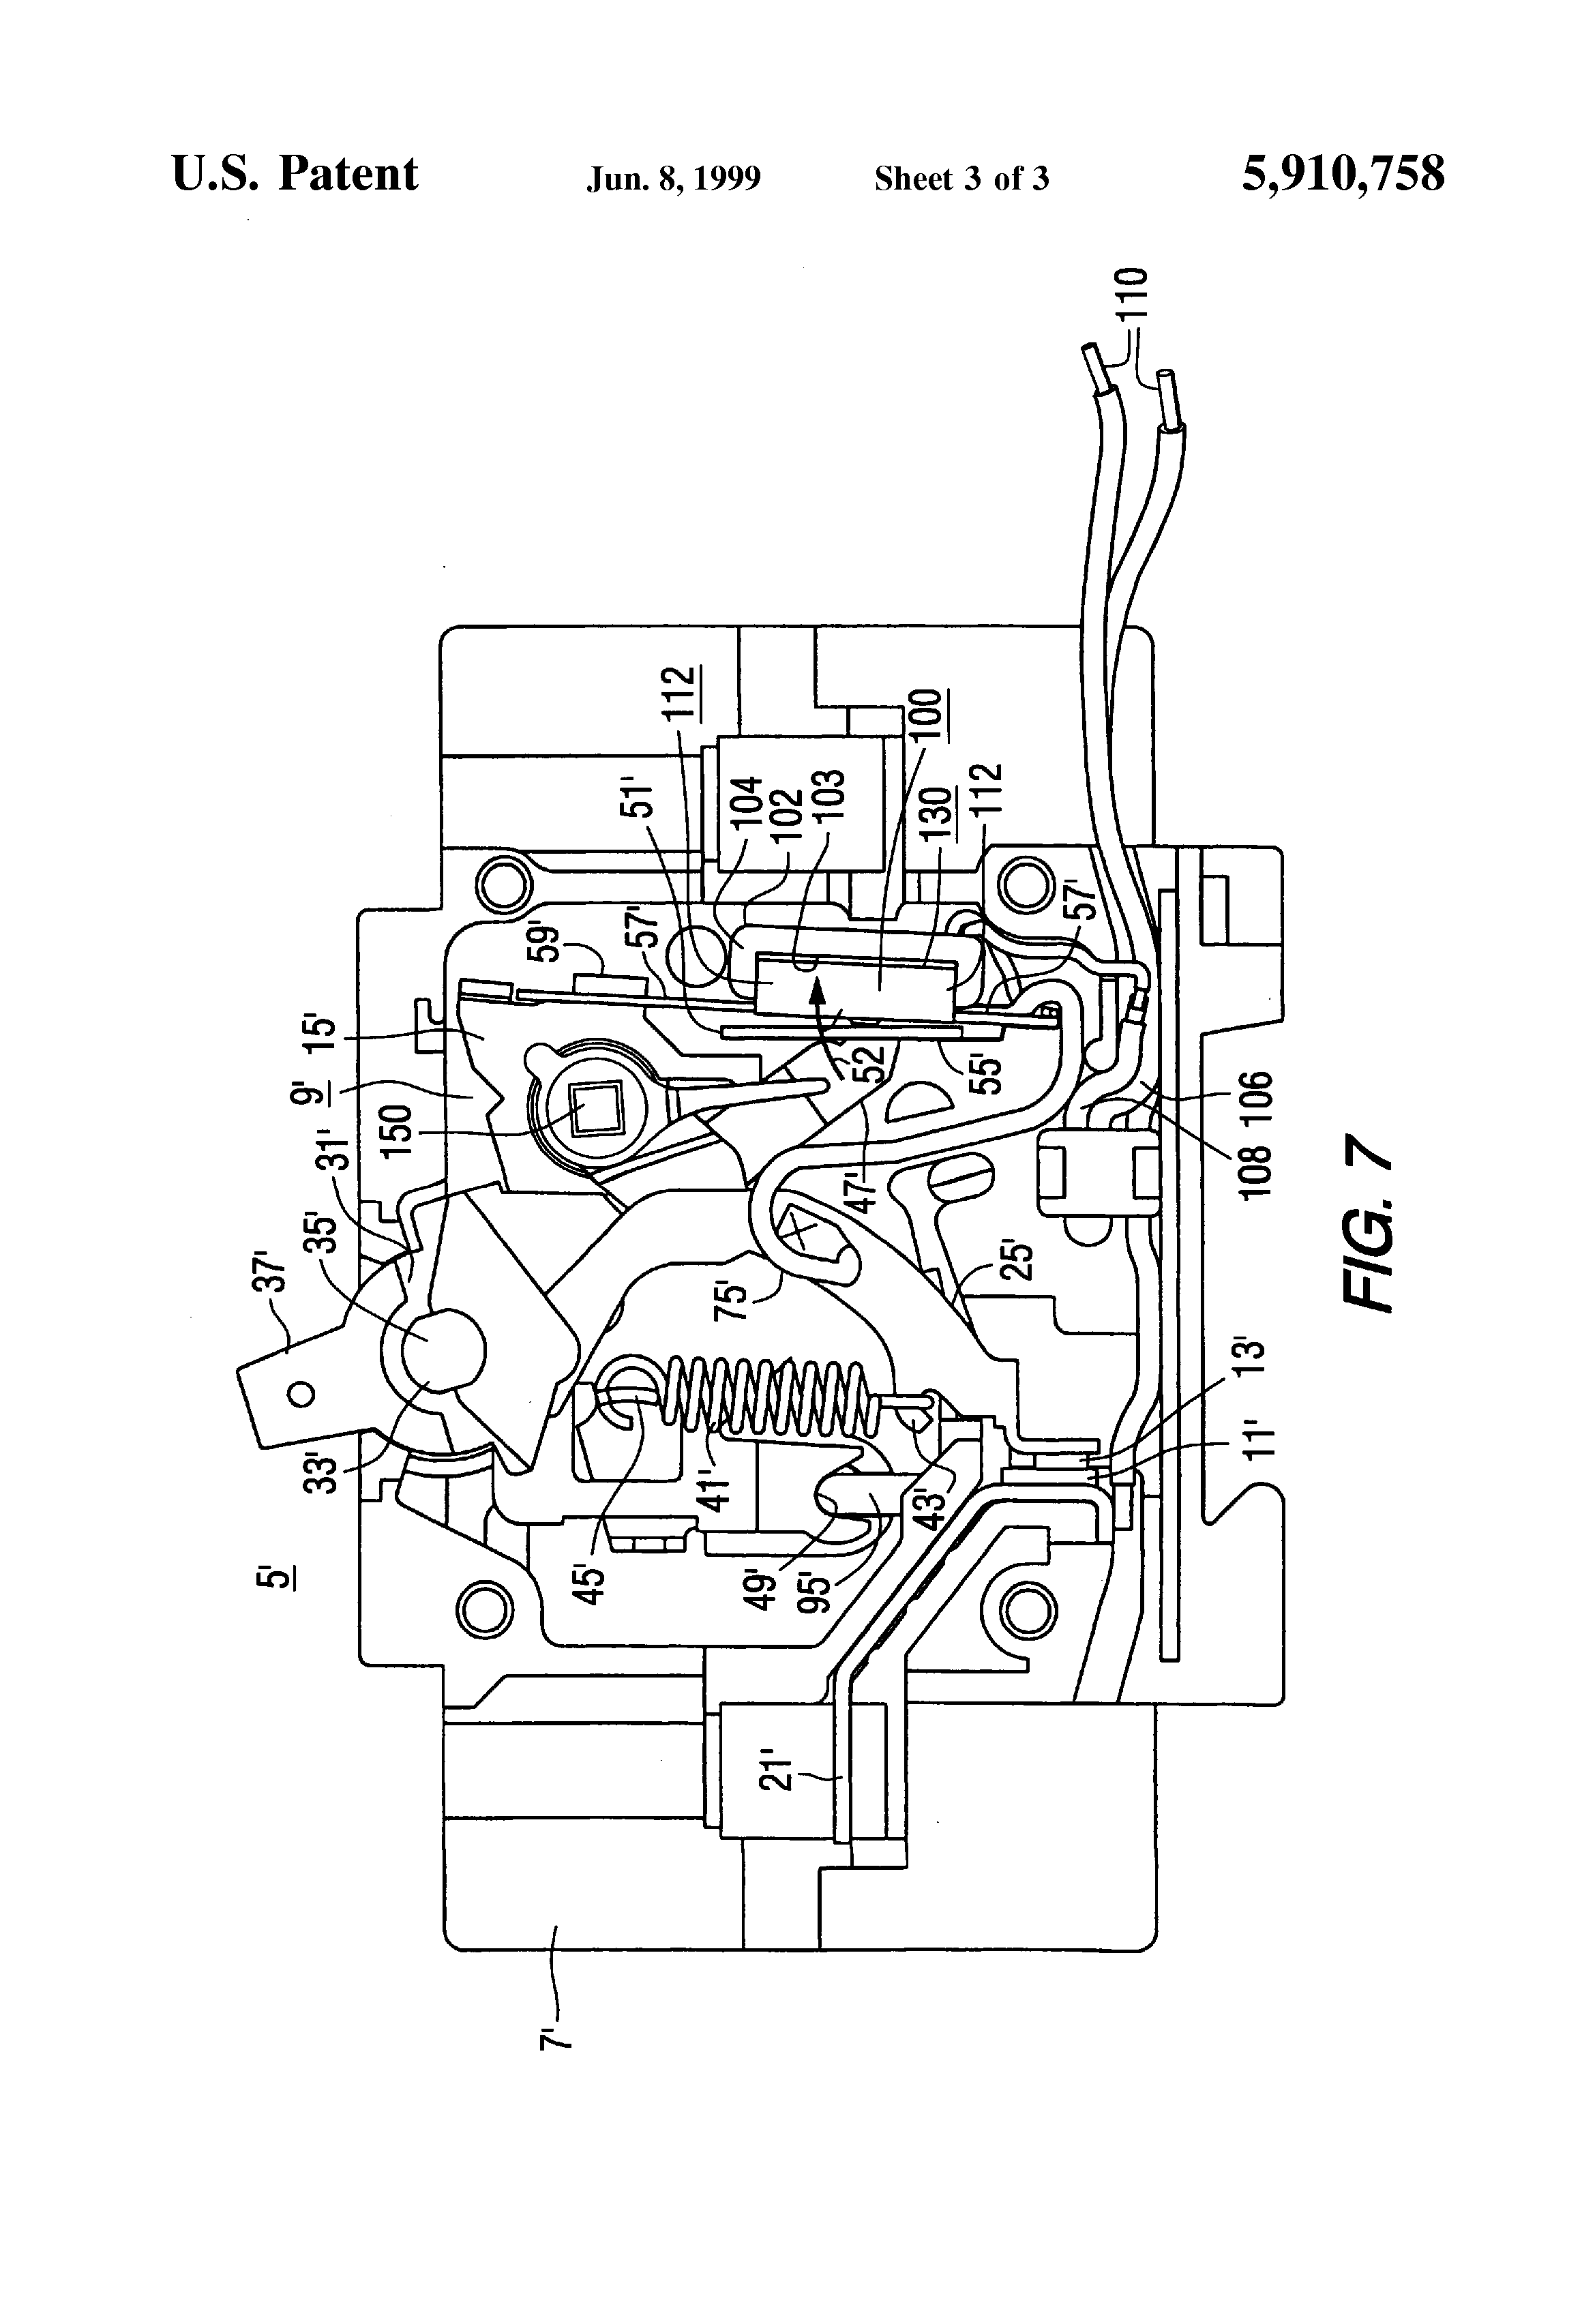 patent us5910758 - miniature circuit breaker with shunt trip device